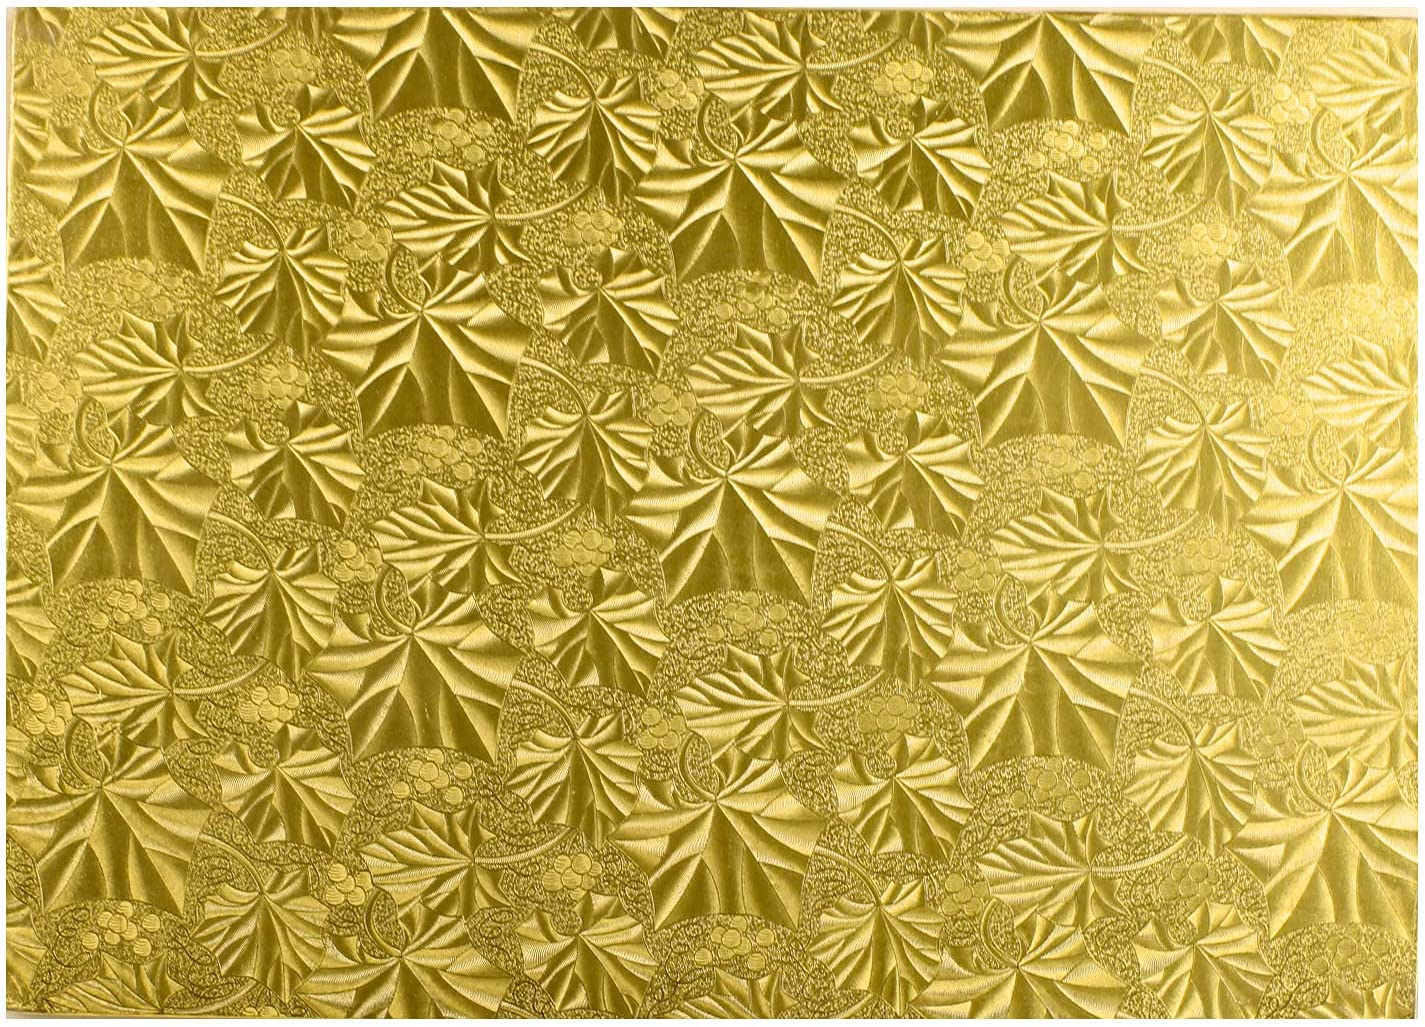 Enjay Pack of New product 12 Rectangular Embossed Gold-Foil I Board Cake 4 1 Max 70% OFF